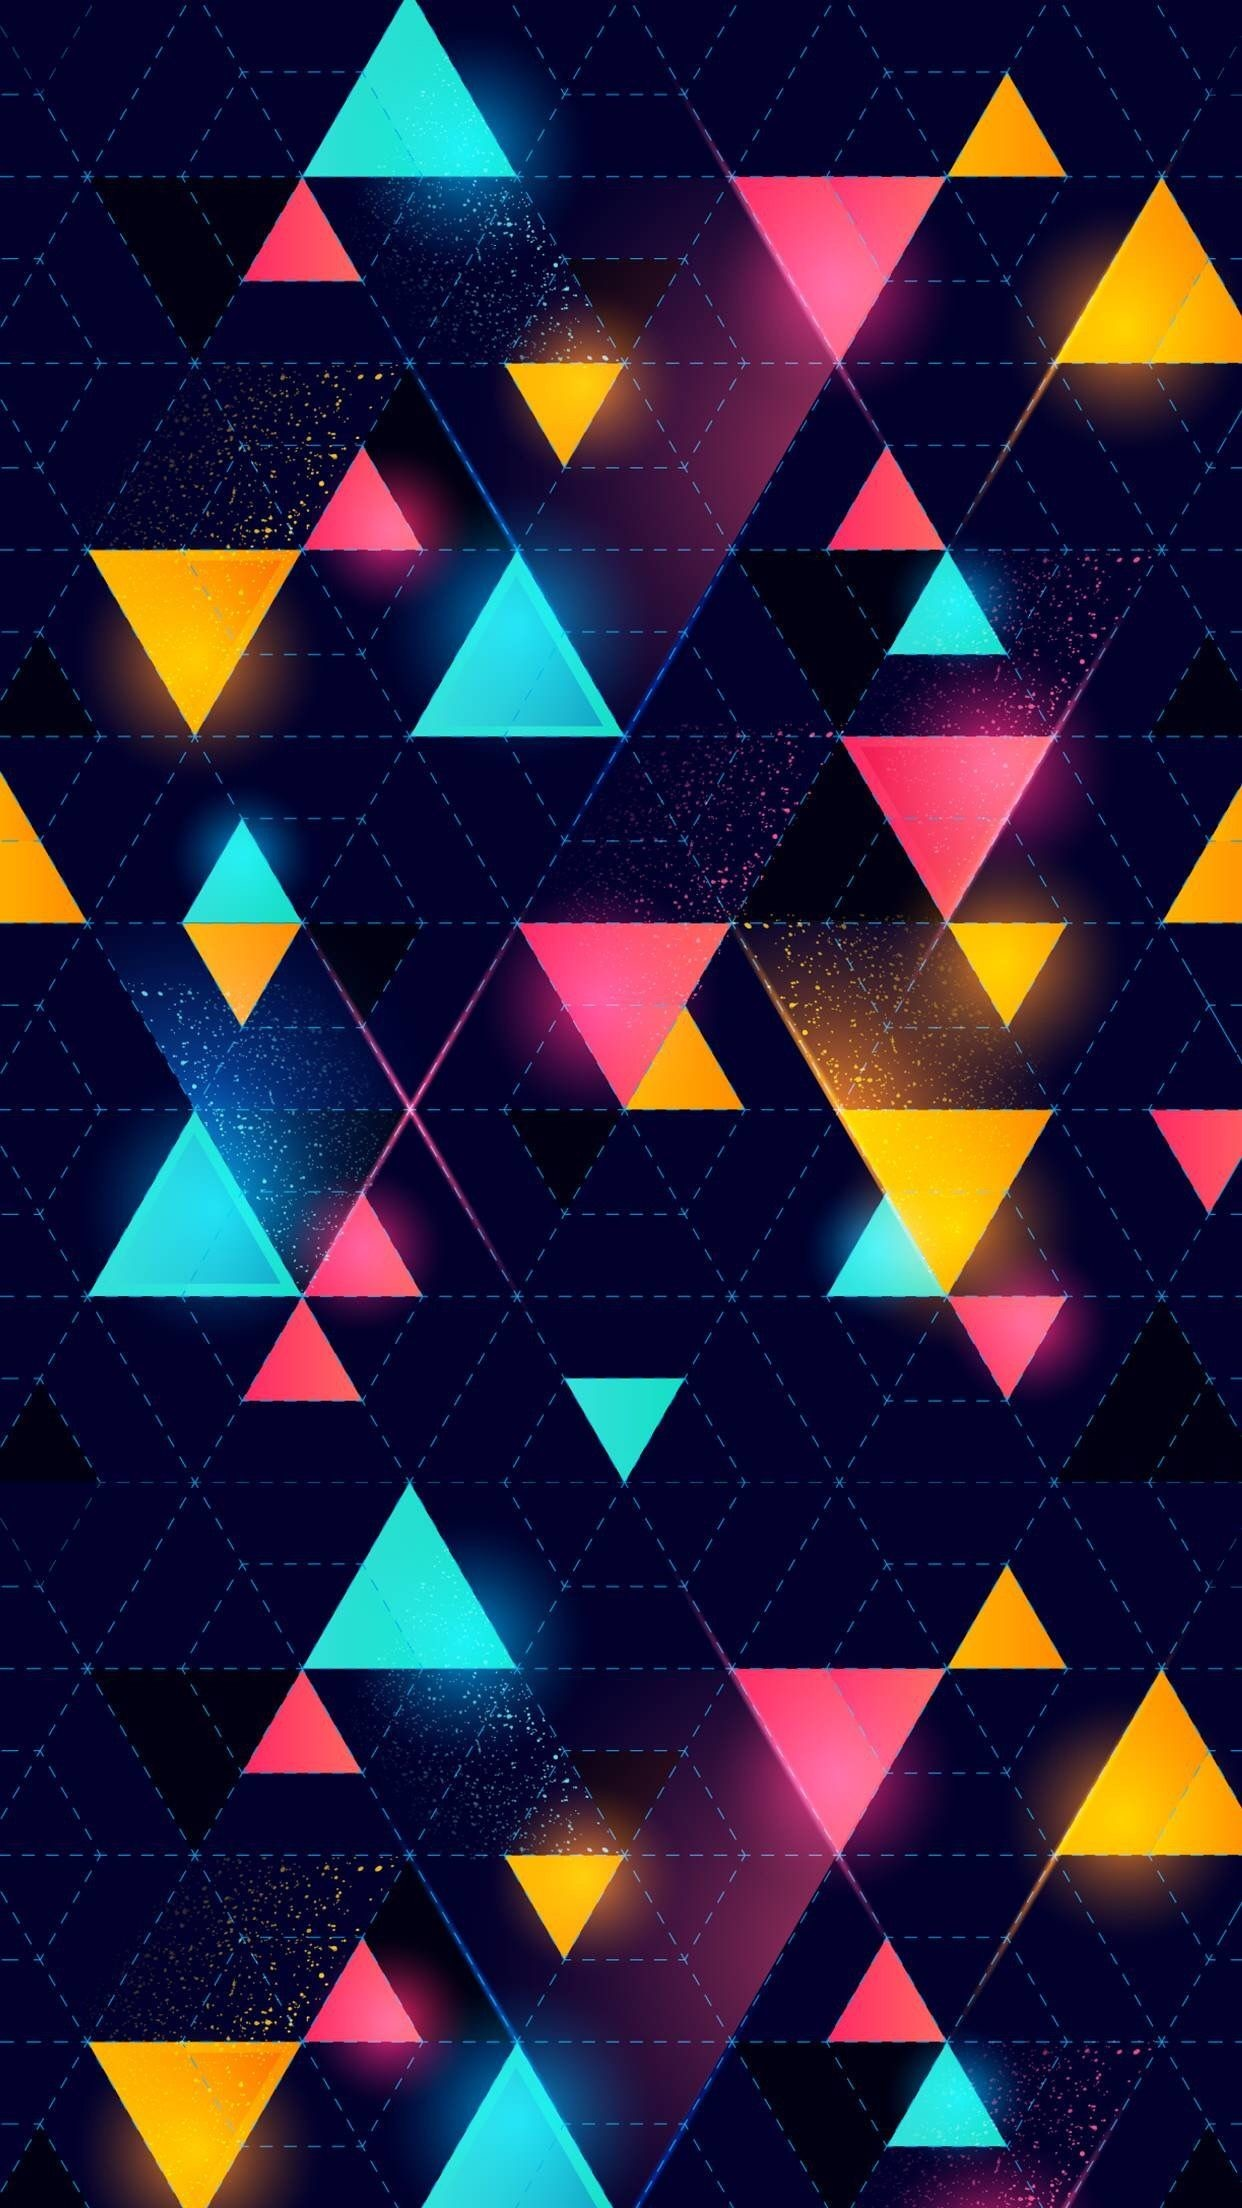 Res: 1242x2208, Dope Wallpapers, Wallpaper Backgrounds, Geometric Wallpaper, Iphone Backgrounds, Iphone Wallpapers, Iphone Hacks, Art Photography, Polymers, Artworks